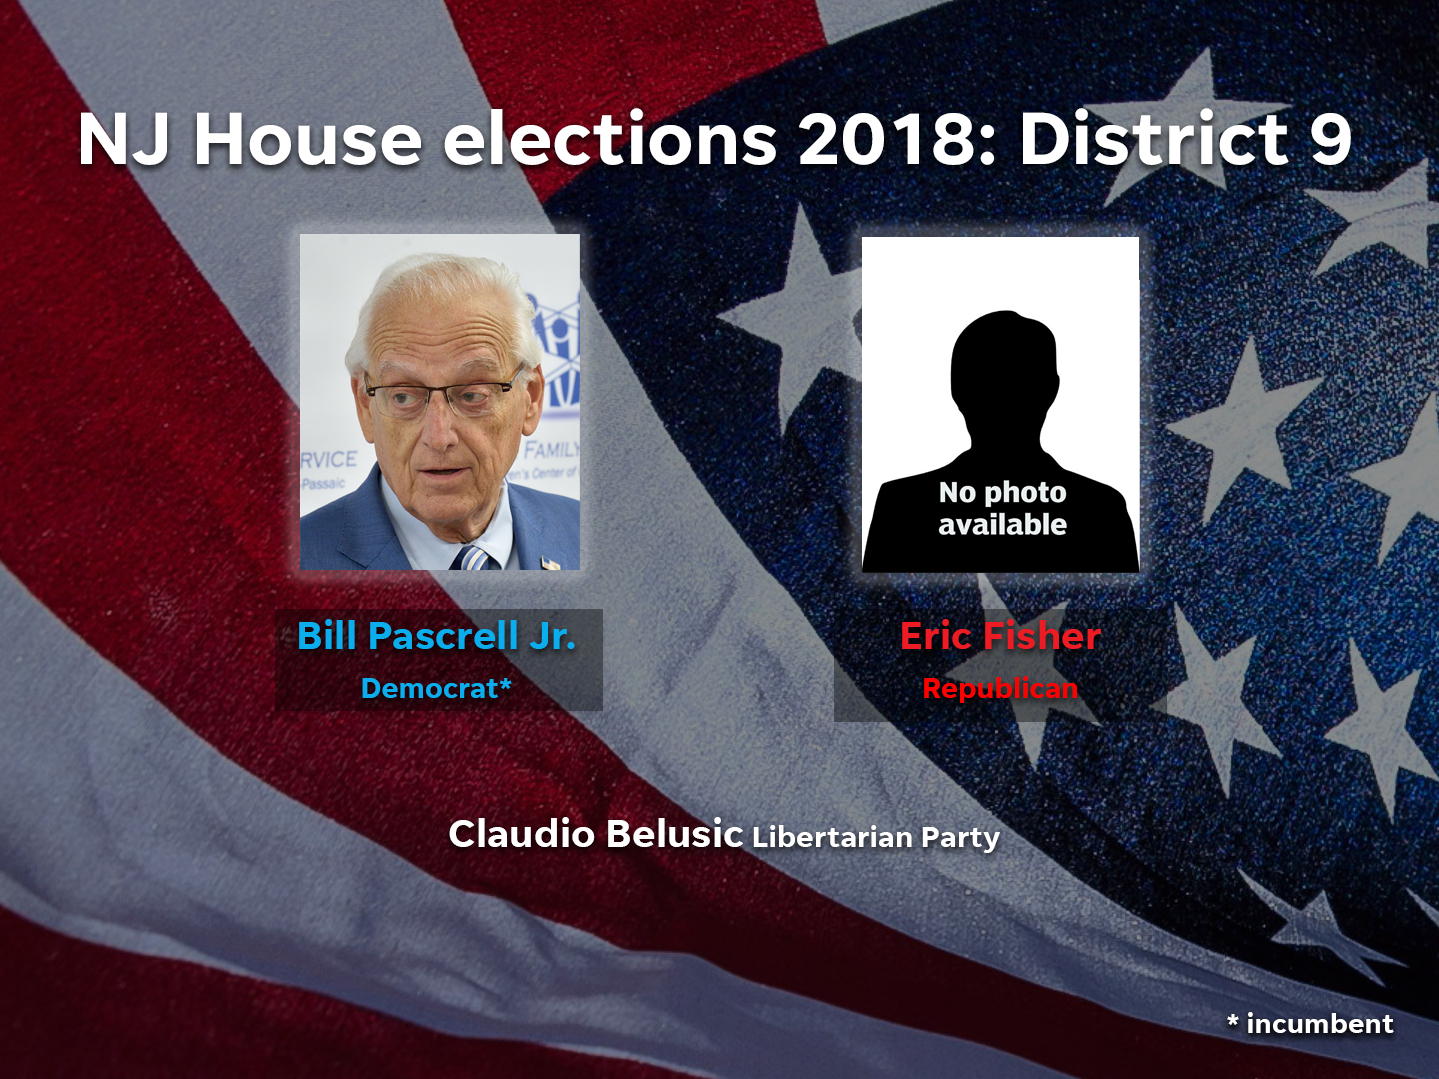 Bill Pascrell Jr. (D) and Eric Fisher (R) are among the candidates running in District 9 in the 2018 NJ House elections.